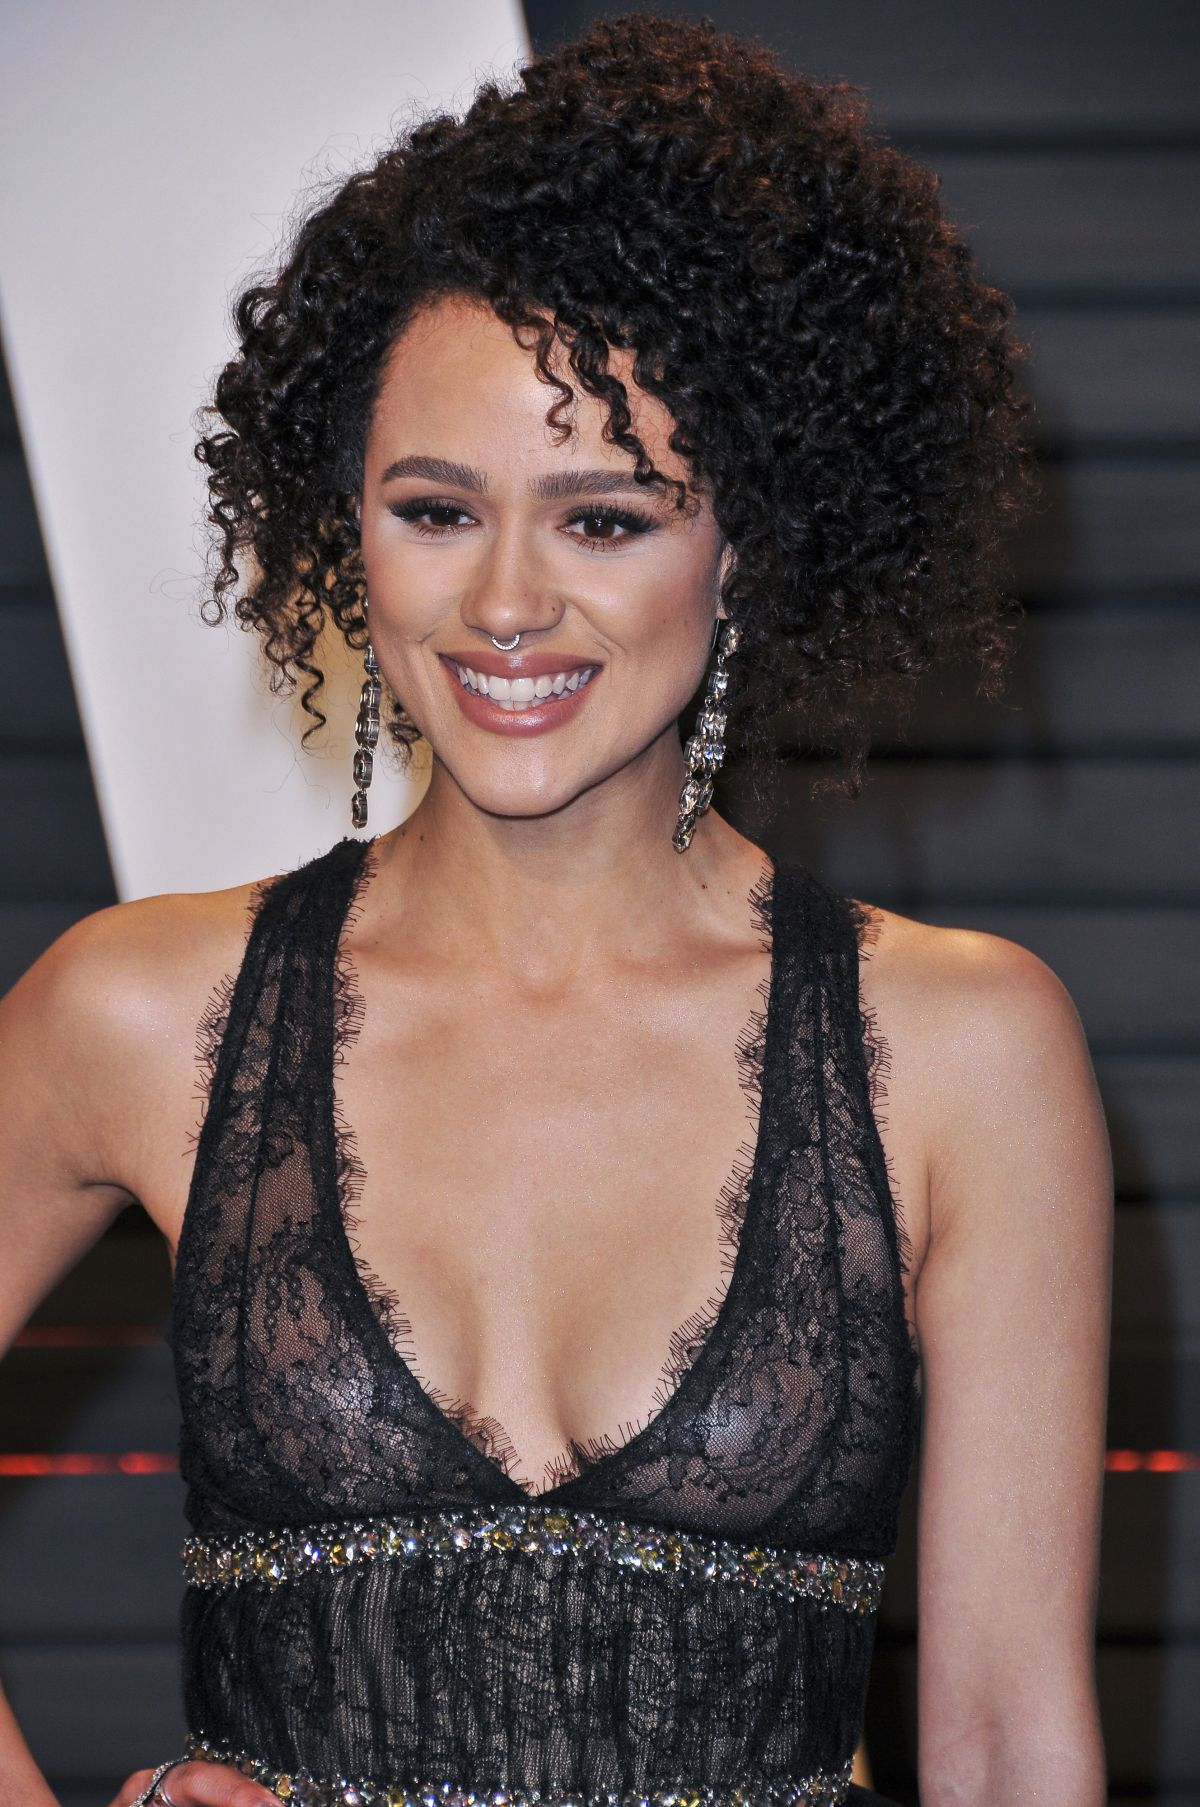 Festive And Fun For Holiday Parties likewise Nathalie Emmanuel Vanity Fair Elton John Aids Foundation Oscar Parties California furthermore Fo 1350391310 further How To Host An Oscar Party Ideas Printables furthermore Leona Lewis Brings Boyfriend Dennis Jauch To Elton John Oscars Party. on oscar parties at home